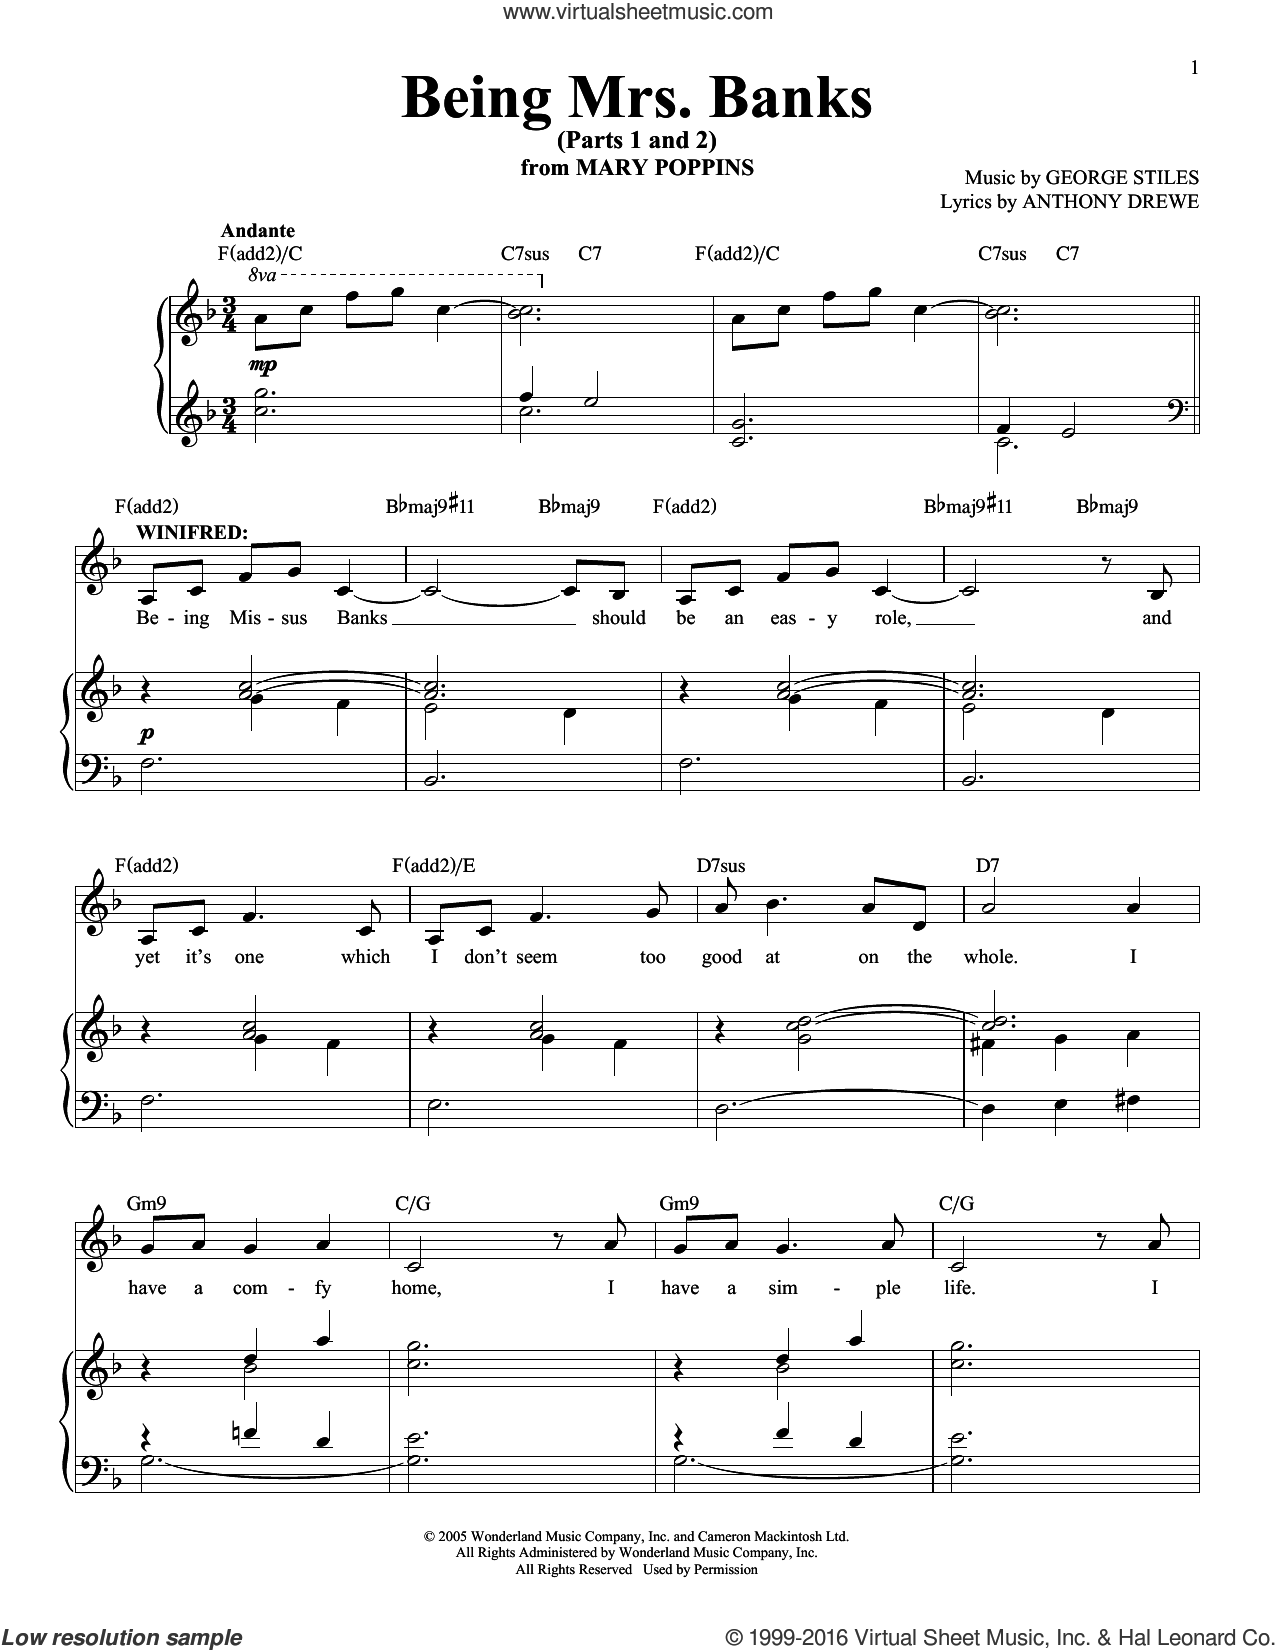 Being Mrs. Banks (Parts 1 and 2) sheet music for voice and piano by George Stiles and Anthony Drewe. Score Image Preview.